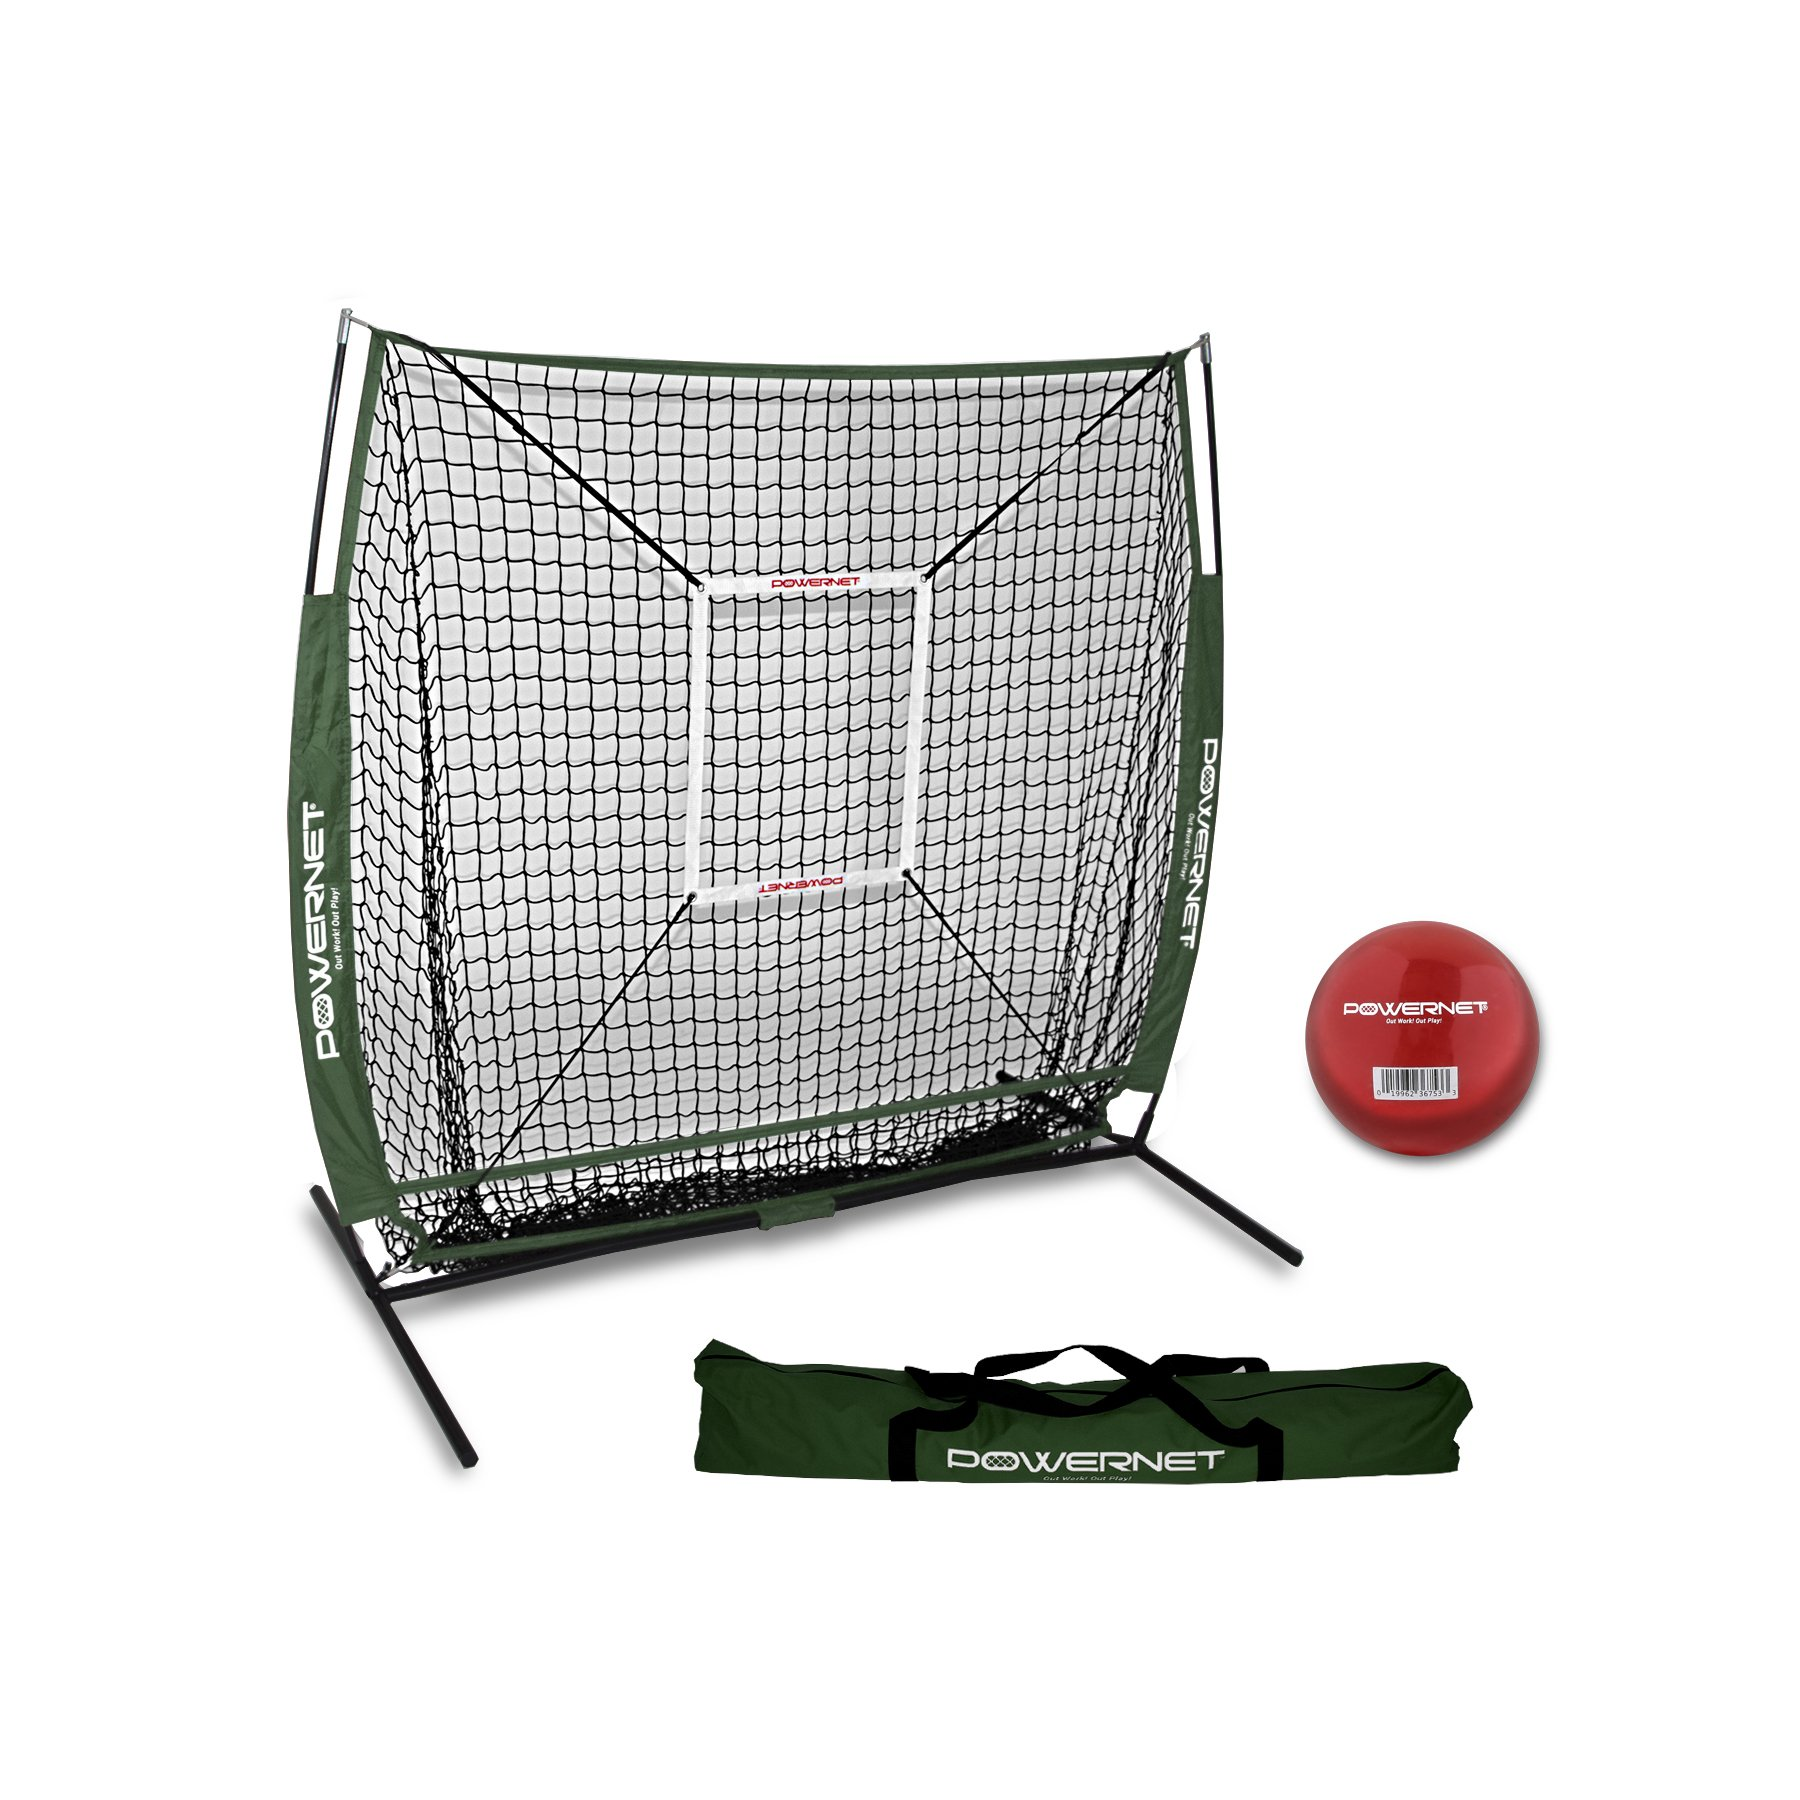 PowerNet 5x5 Practice Net + Strike Zone + Weighted Training Ball Bundle (Green) | Baseball Softball Coaching Aid | Compact Lightweight Ultra Portable | Team Color | Batting Screen by PowerNet